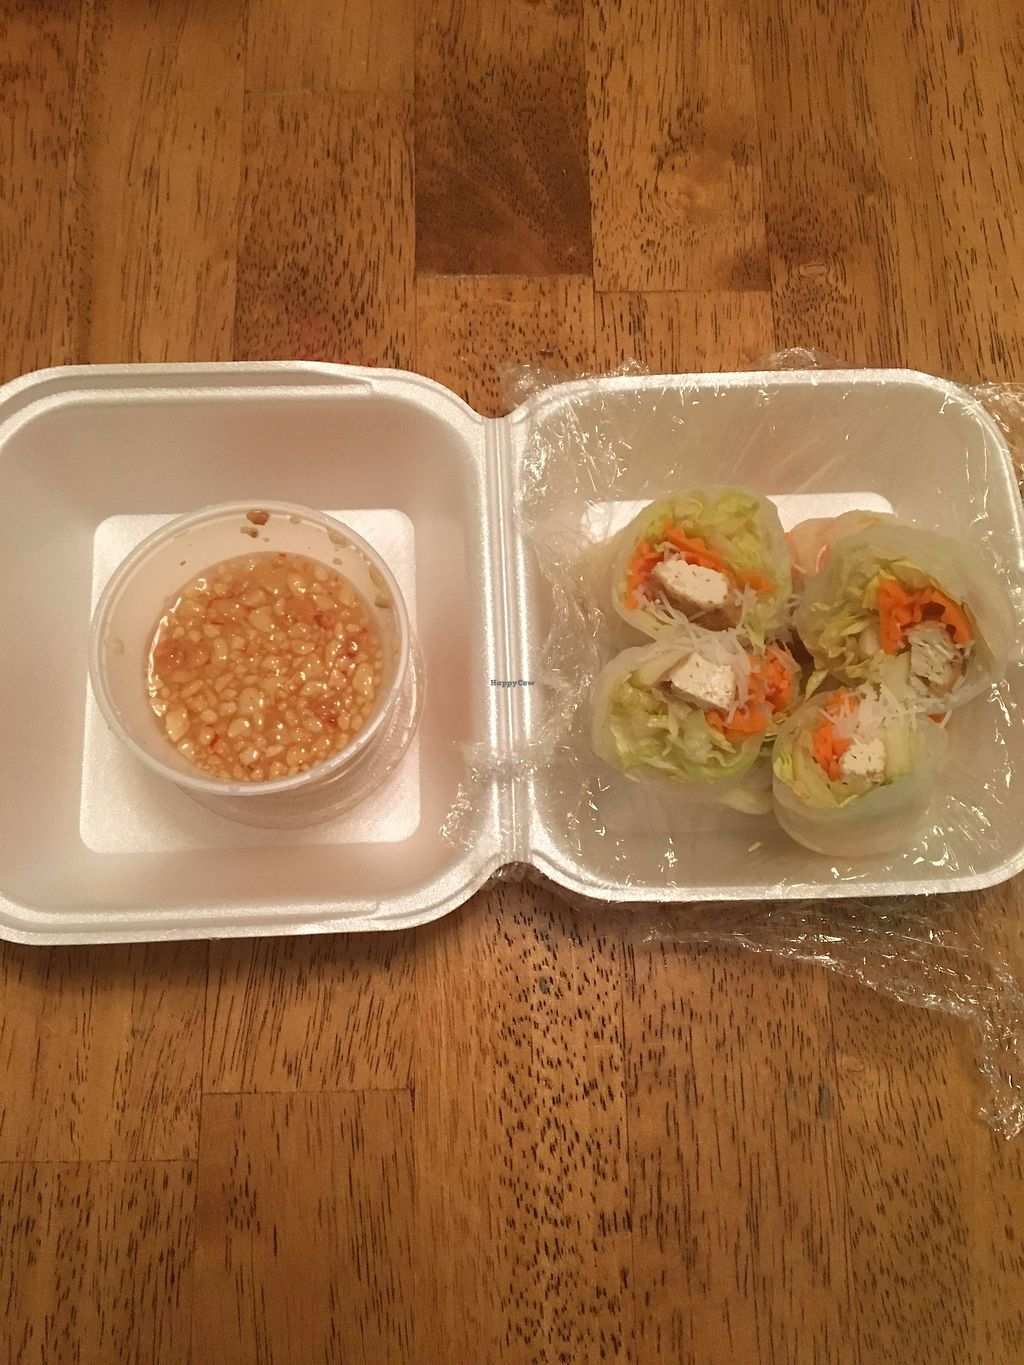 """Photo of Thai Kitchen  by <a href=""""/members/profile/sophiefrenchfry"""">sophiefrenchfry</a> <br/>Veggie fresh roll with tofu <br/> November 3, 2017  - <a href='/contact/abuse/image/70027/321540'>Report</a>"""